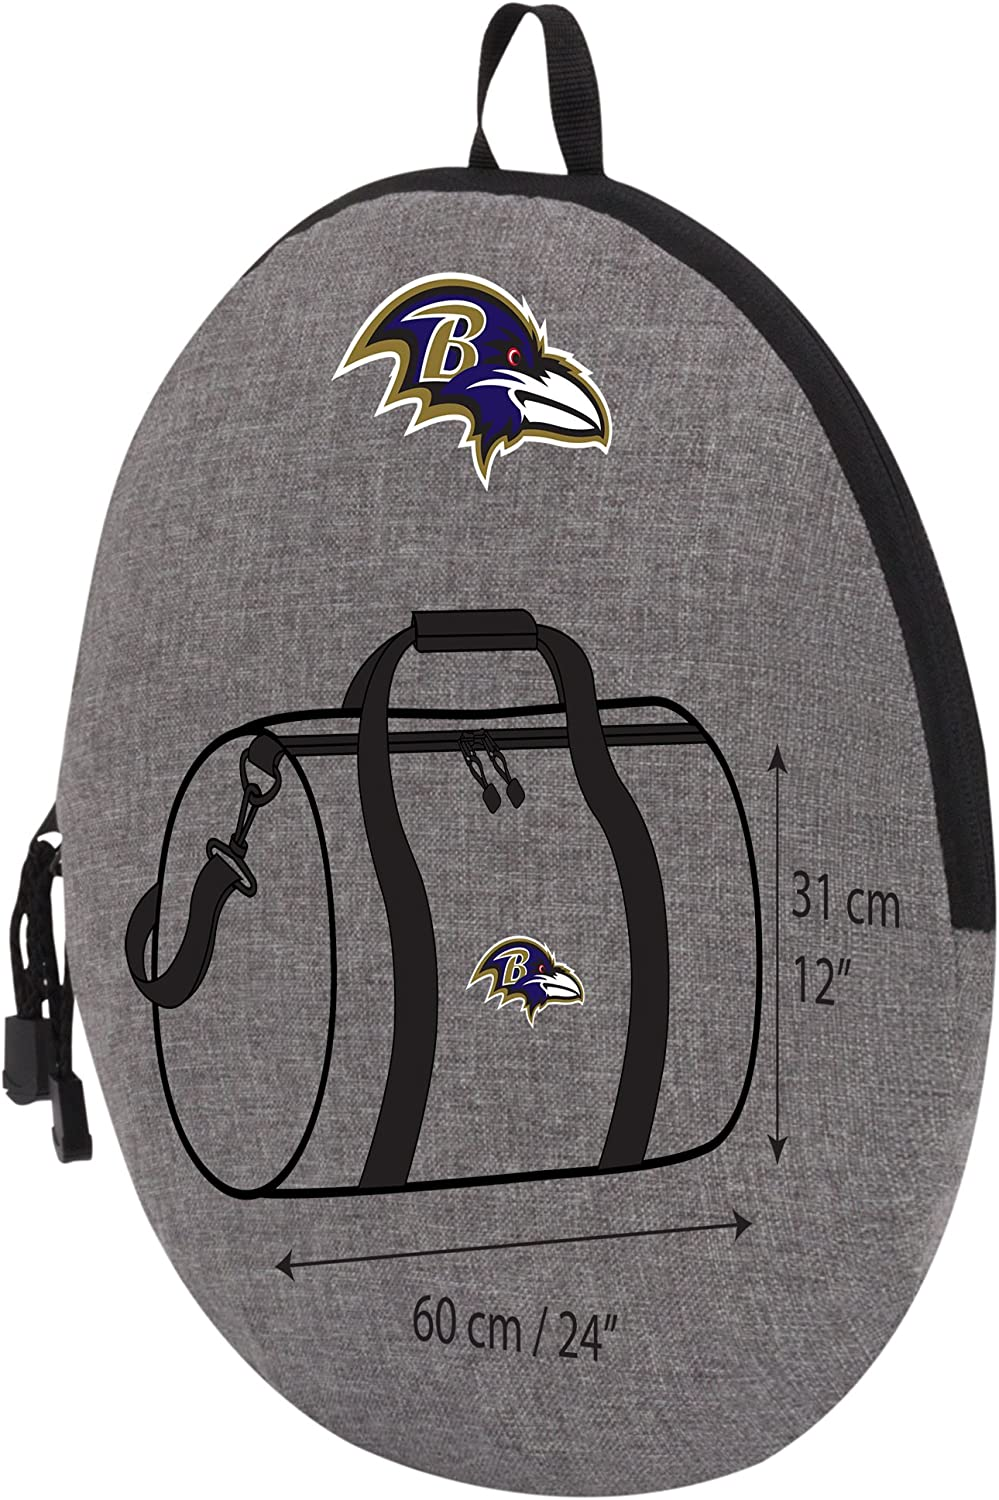 24 x 12 x 12 Gray Officially Licensed NFL Wingman Duffel Bag